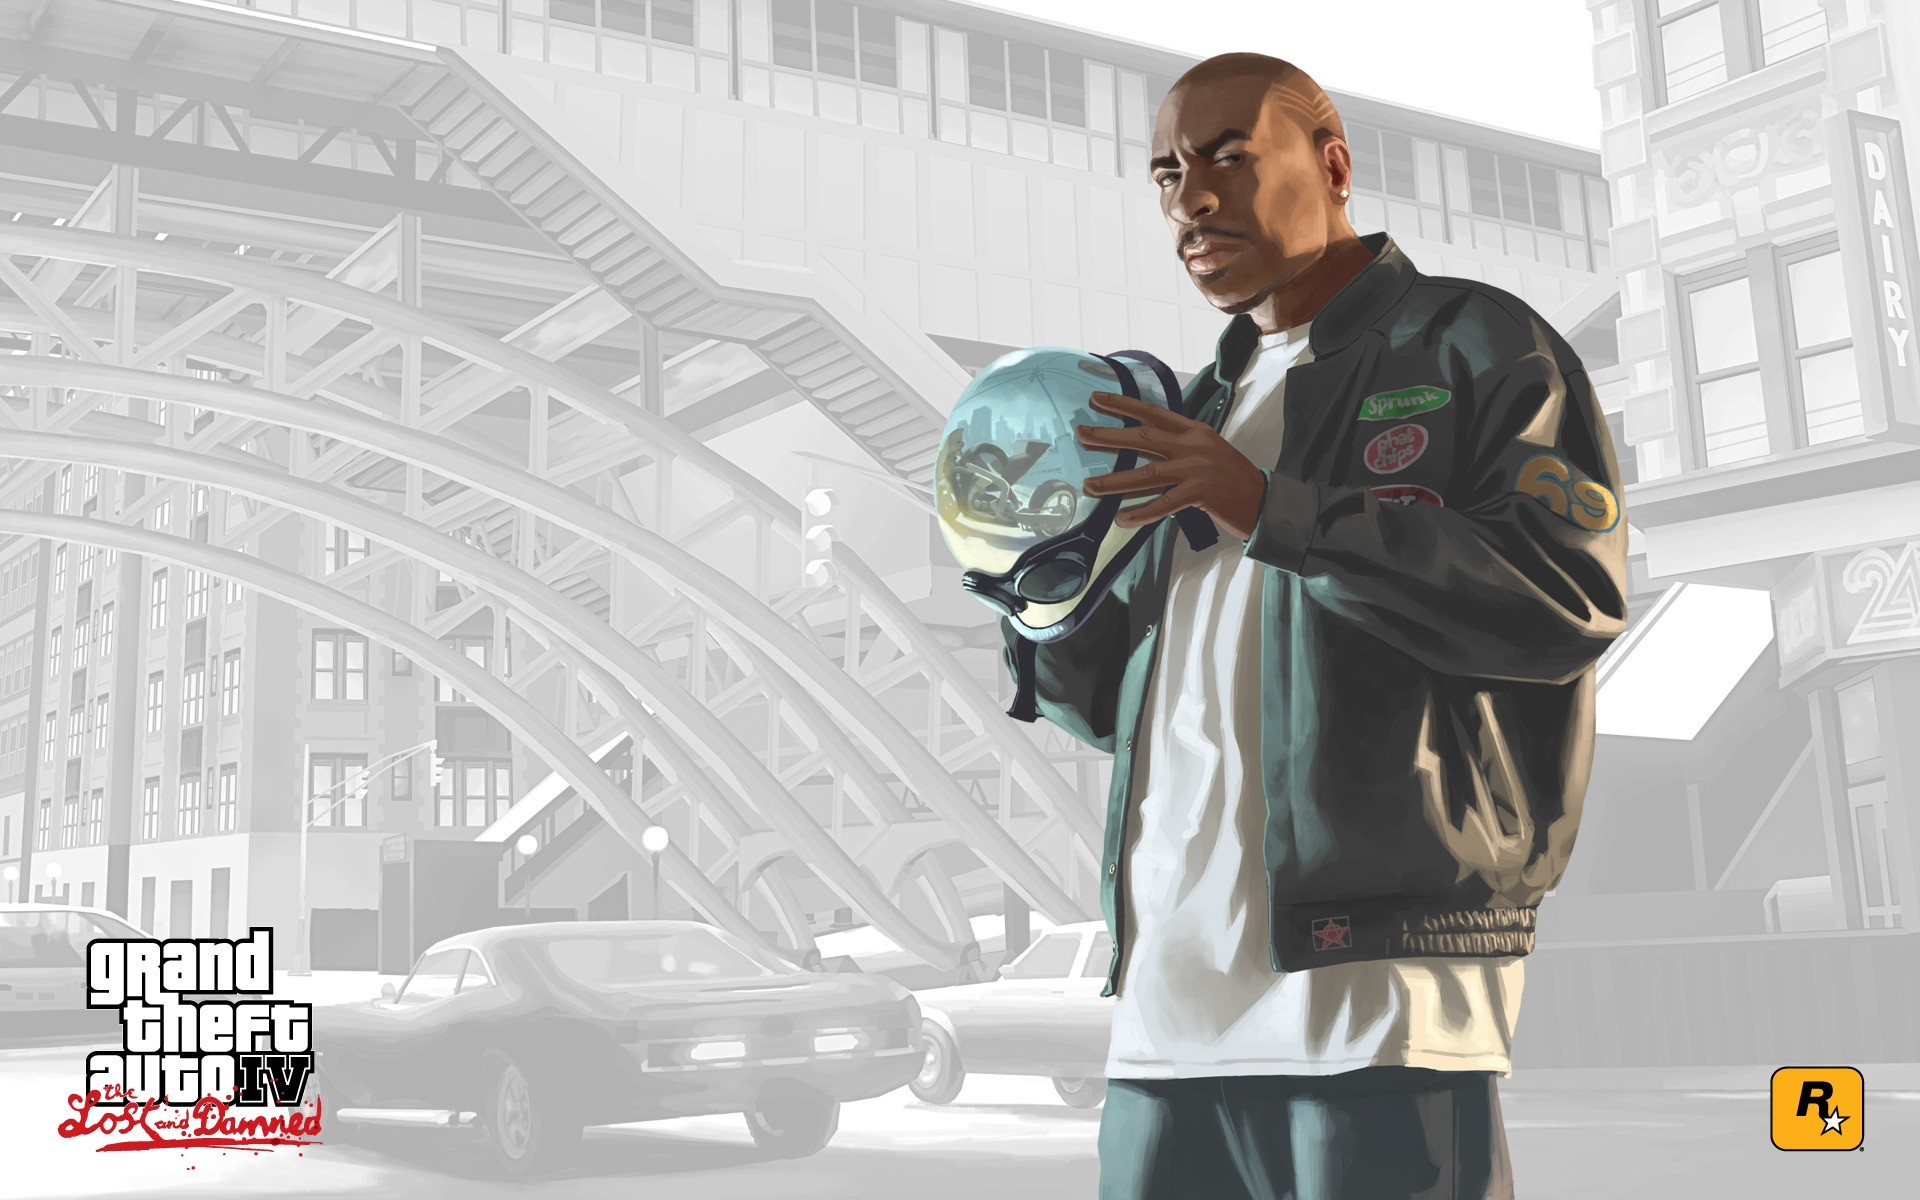 Res: 1920x1200, GTA The Lost And Damned Wallpaper GTA IV Games Wallpapers